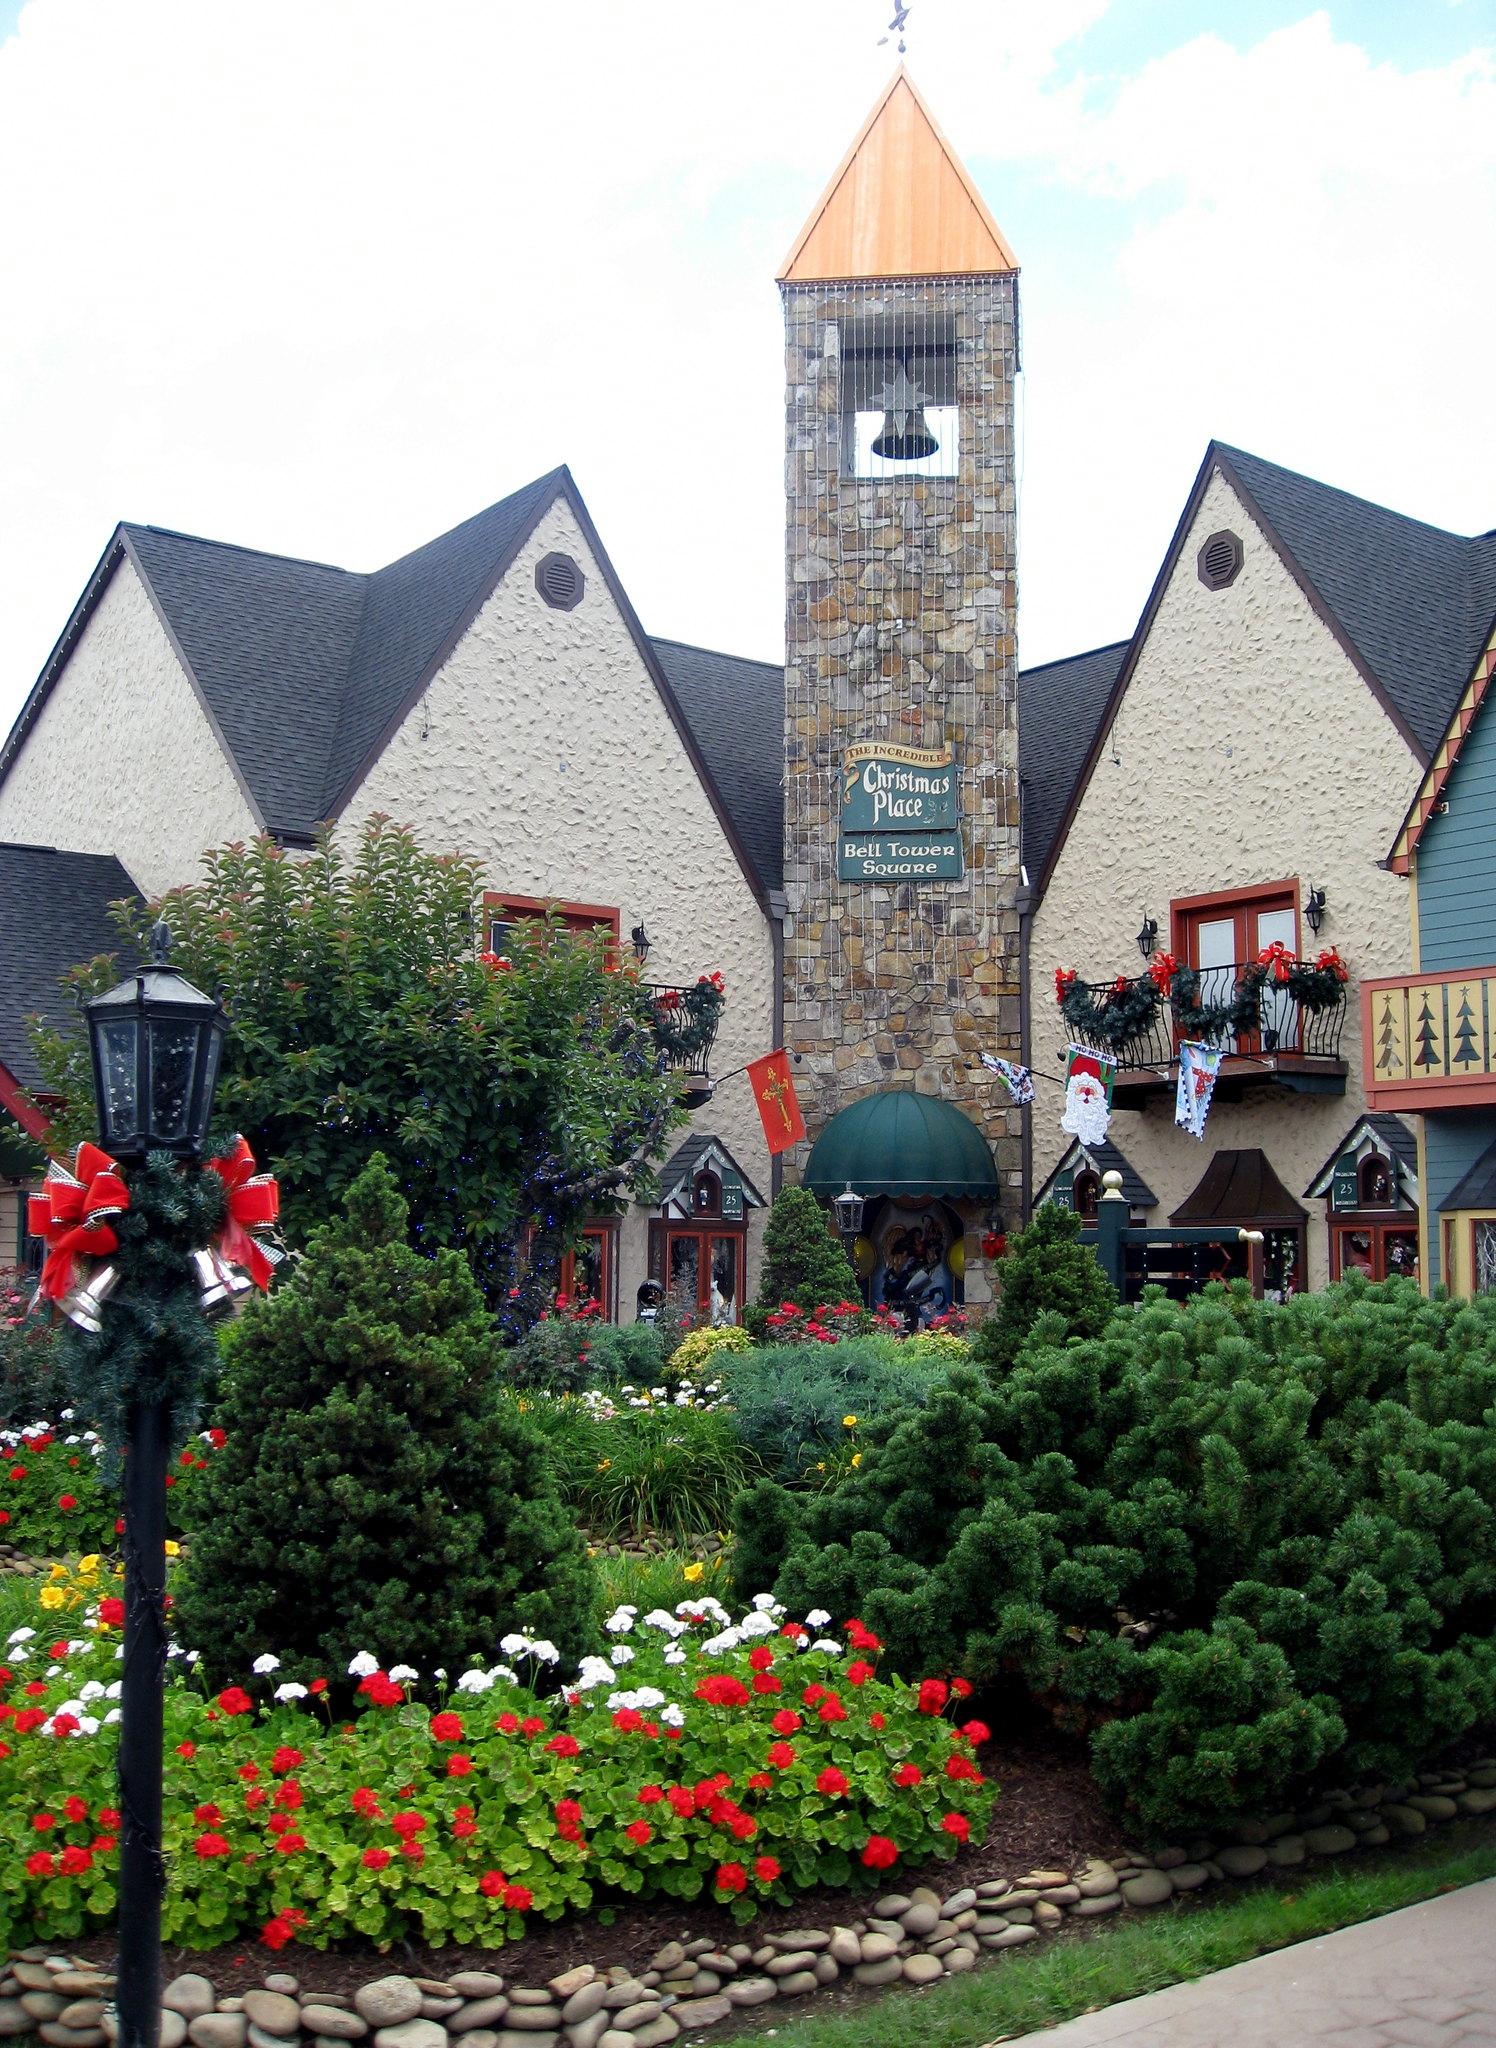 Pigeon Forge - The Incredible Christmas Place - Entrance